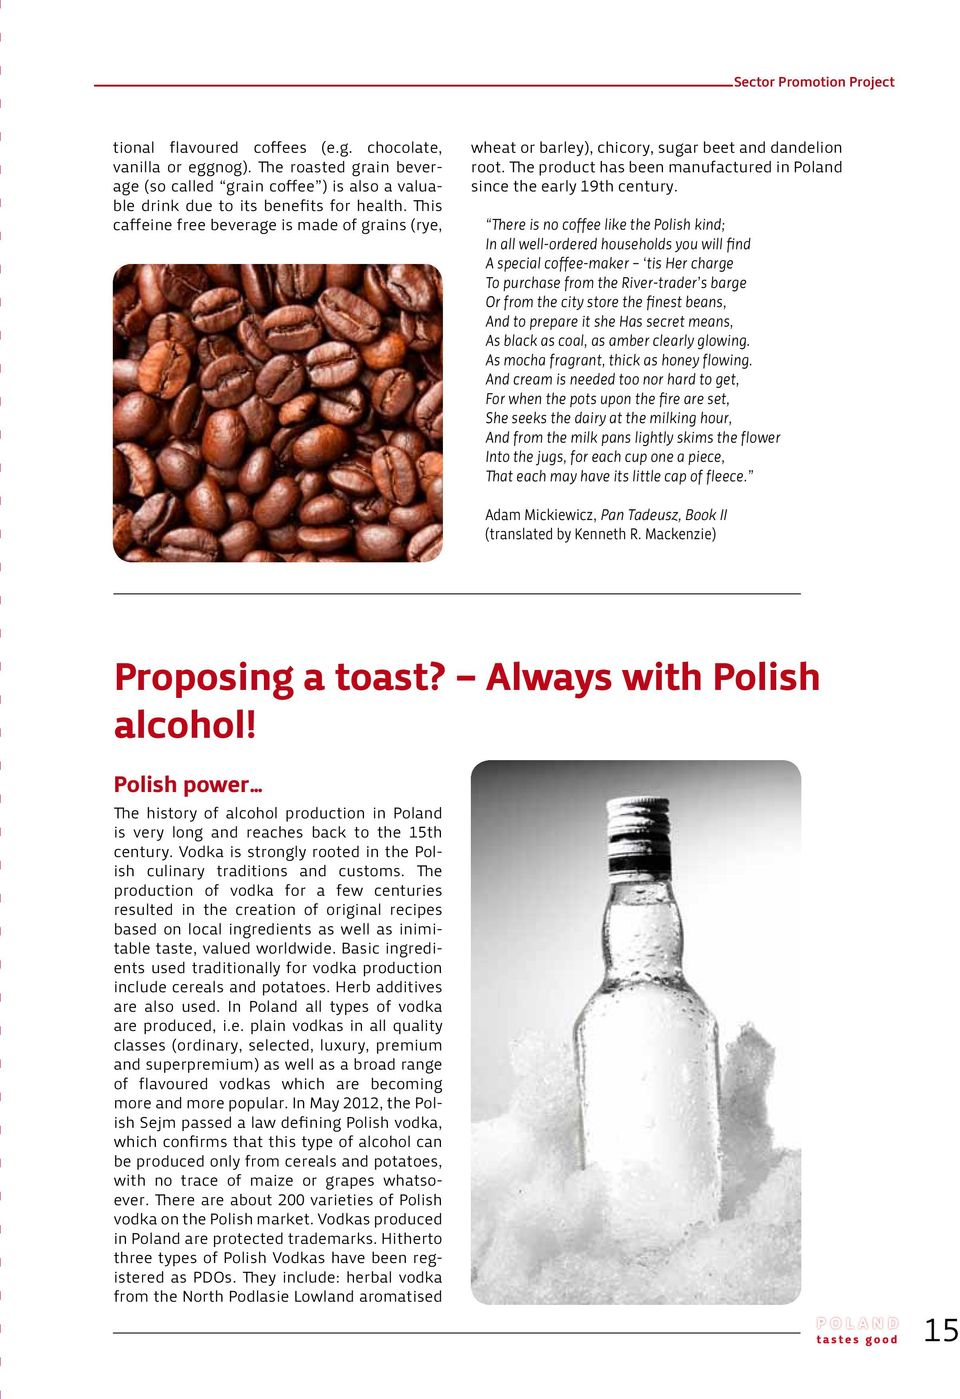 There is no coffee like the Polish kind; In all well-ordered households you will find A special coffee-maker tis Her charge To purchase from the River-trader s barge Or from the city store the finest